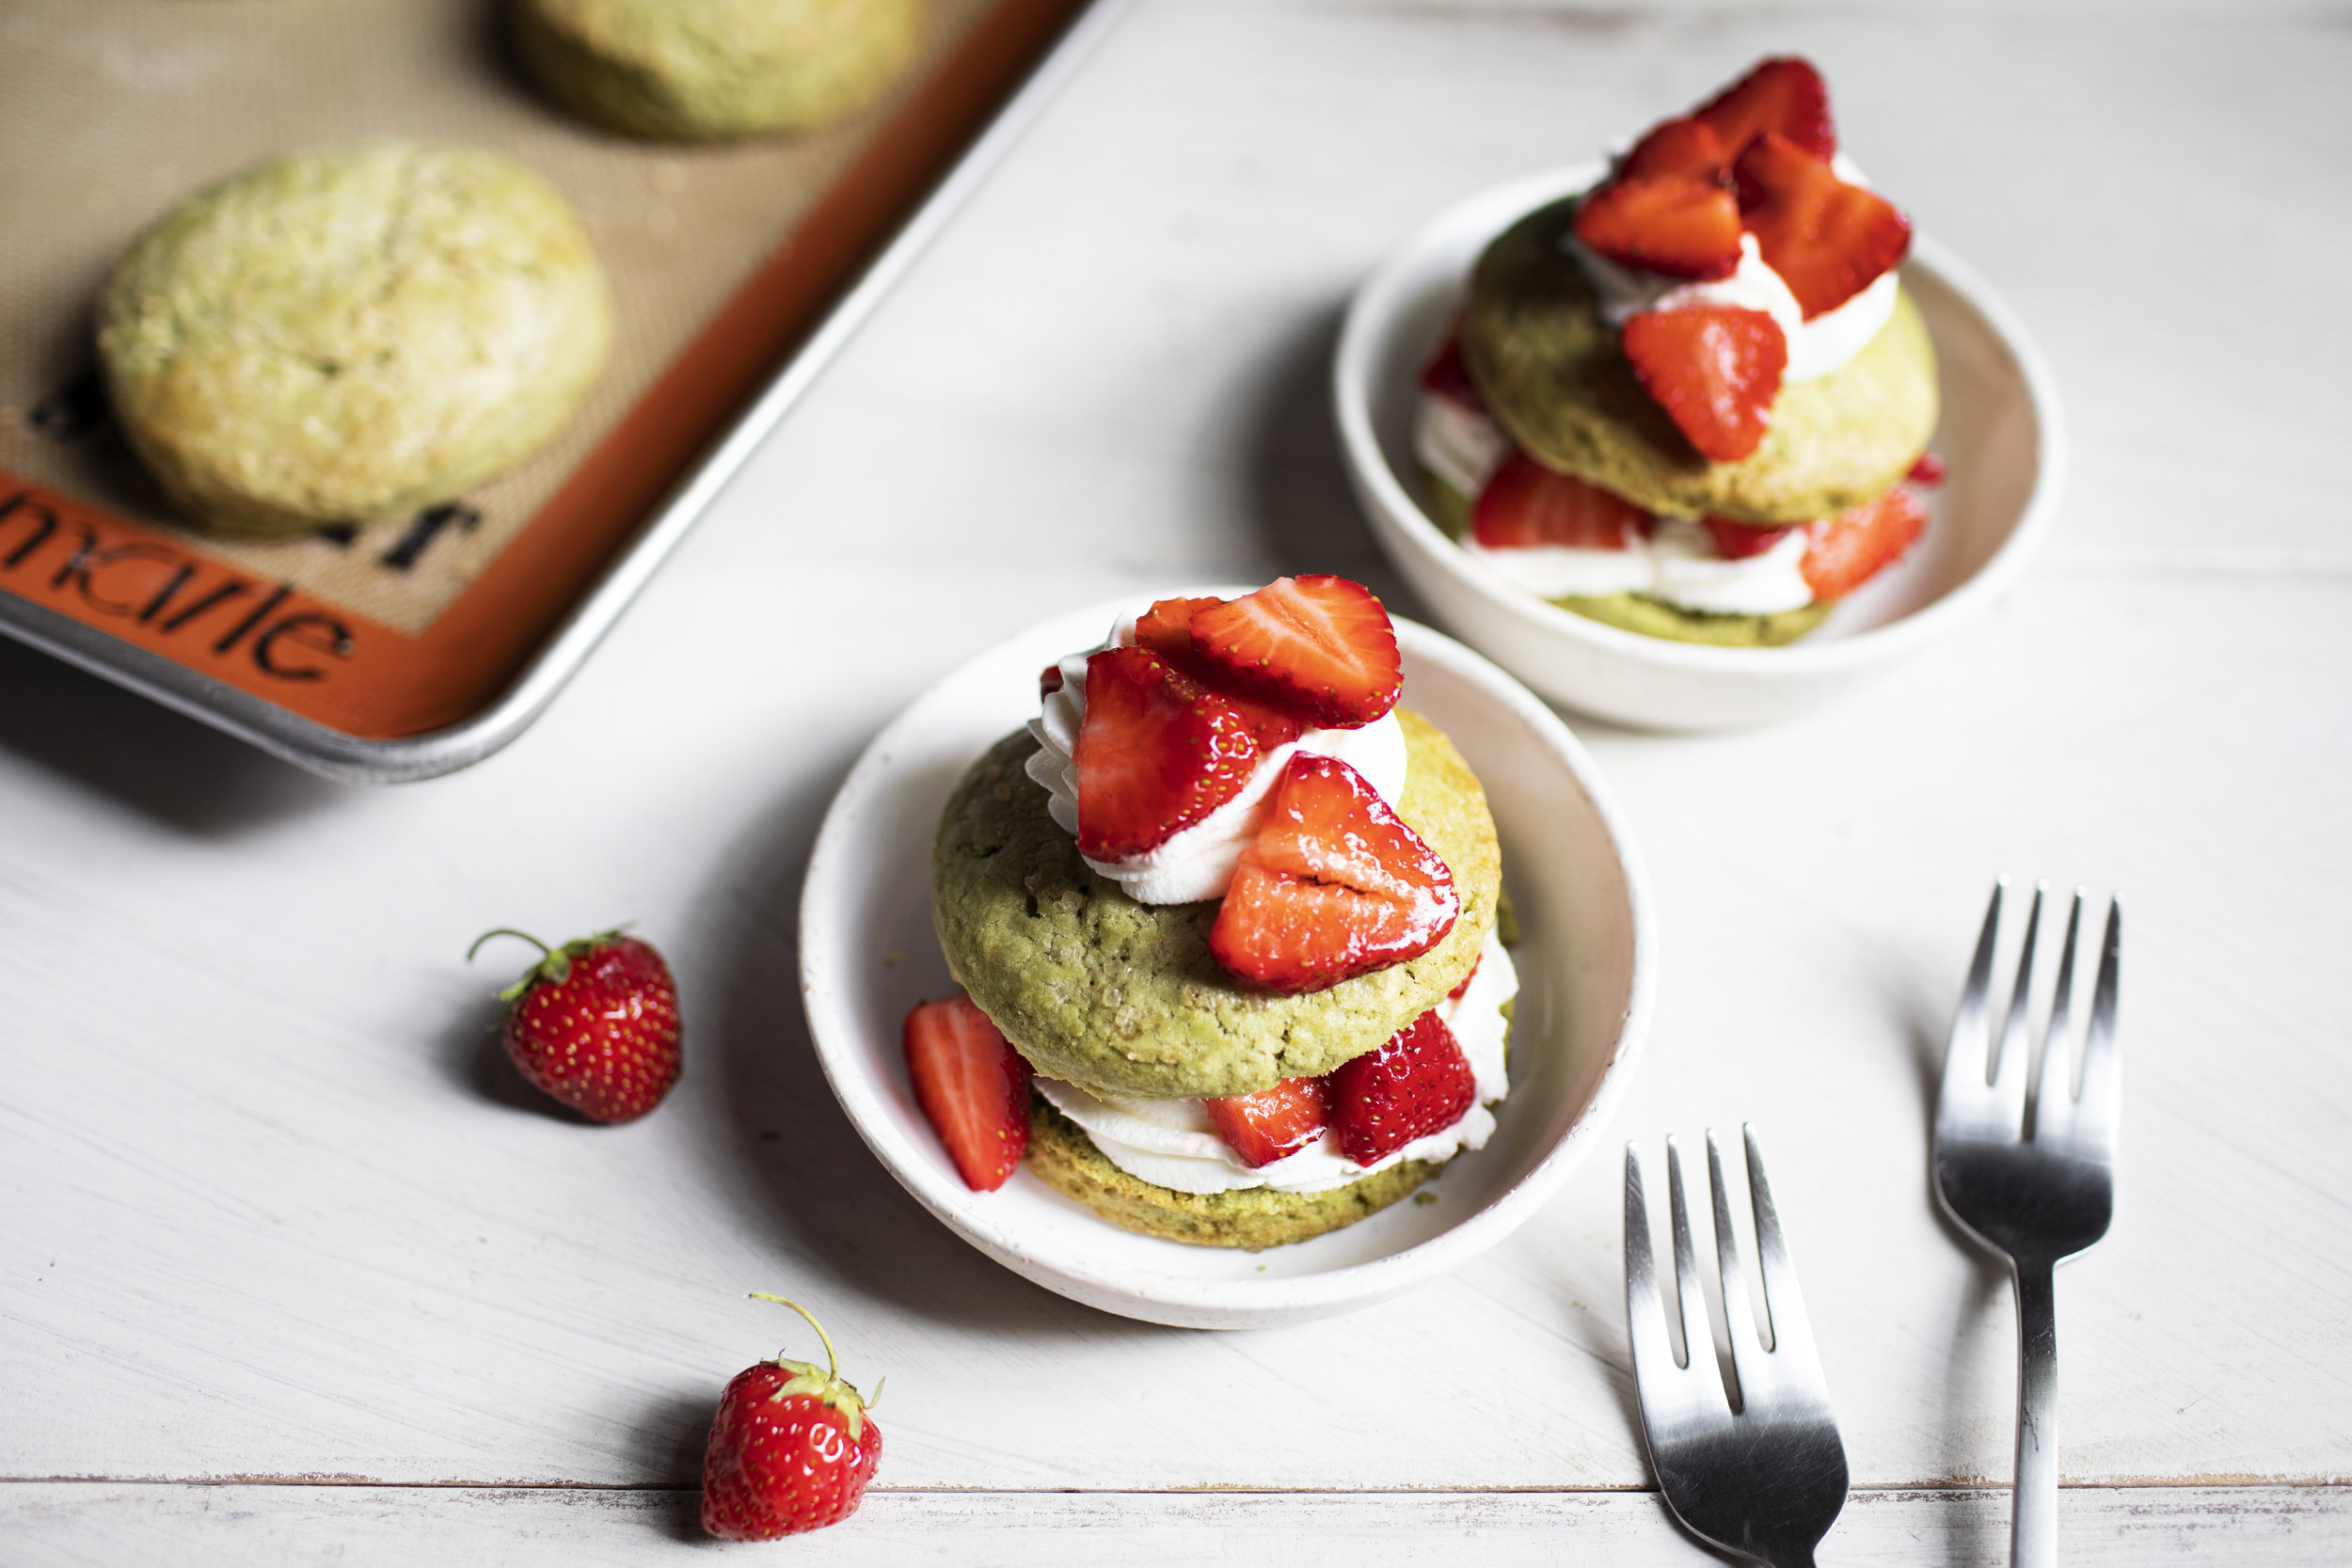 green tea strawberry shortcake v.jpg